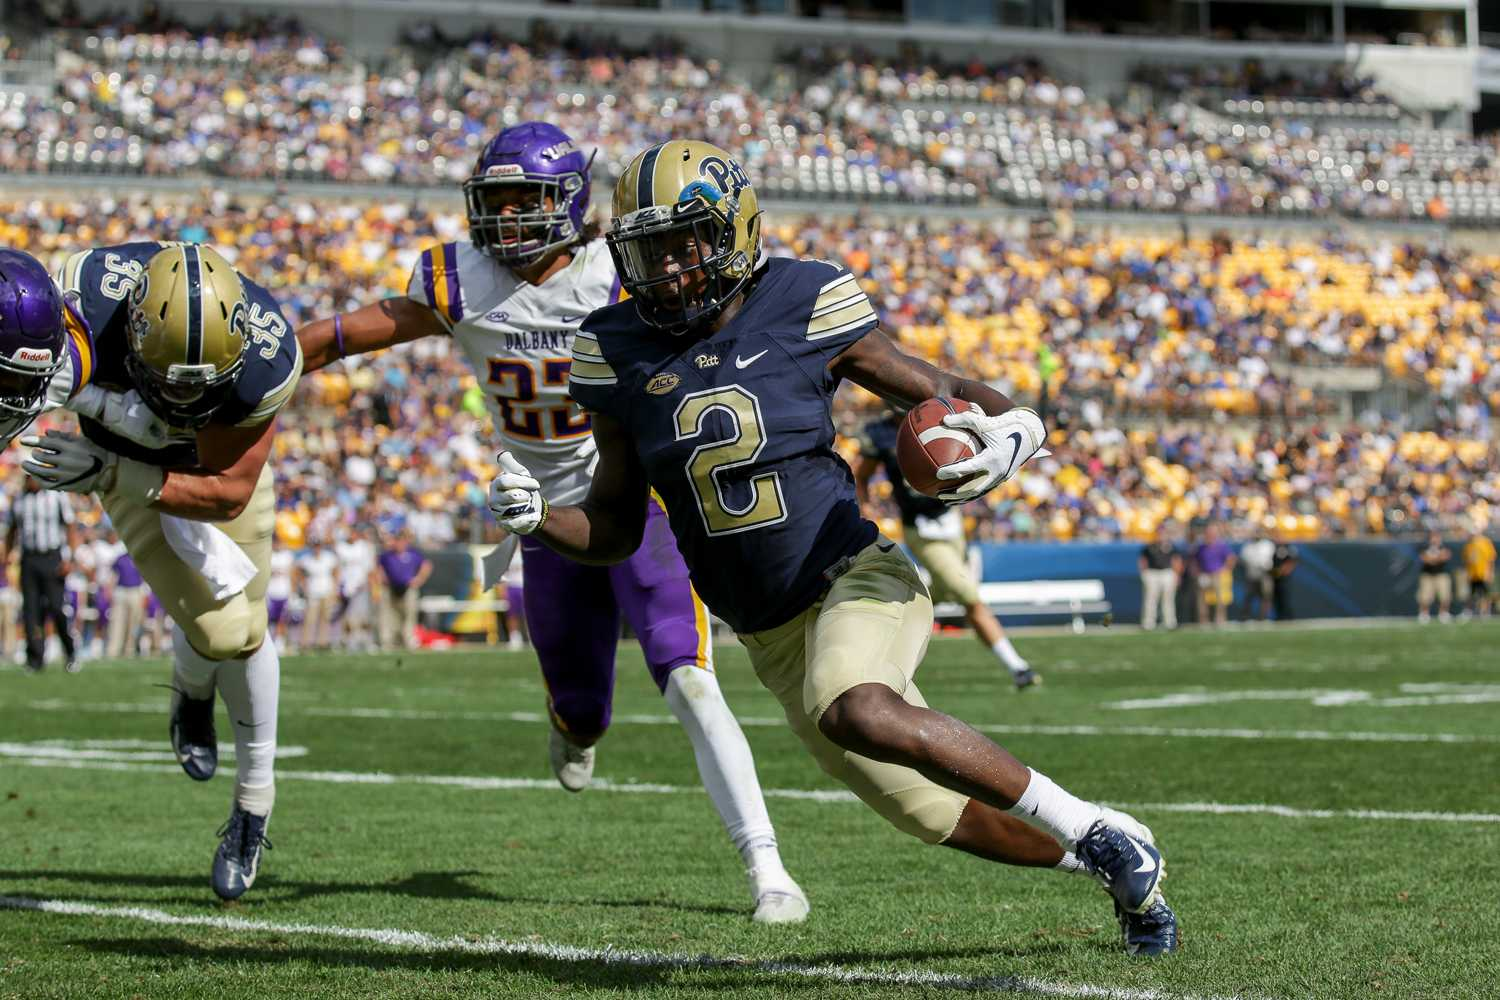 Junior wide receiver Maurice Ffrench runs the ball while completing his first touchdown against Albany.